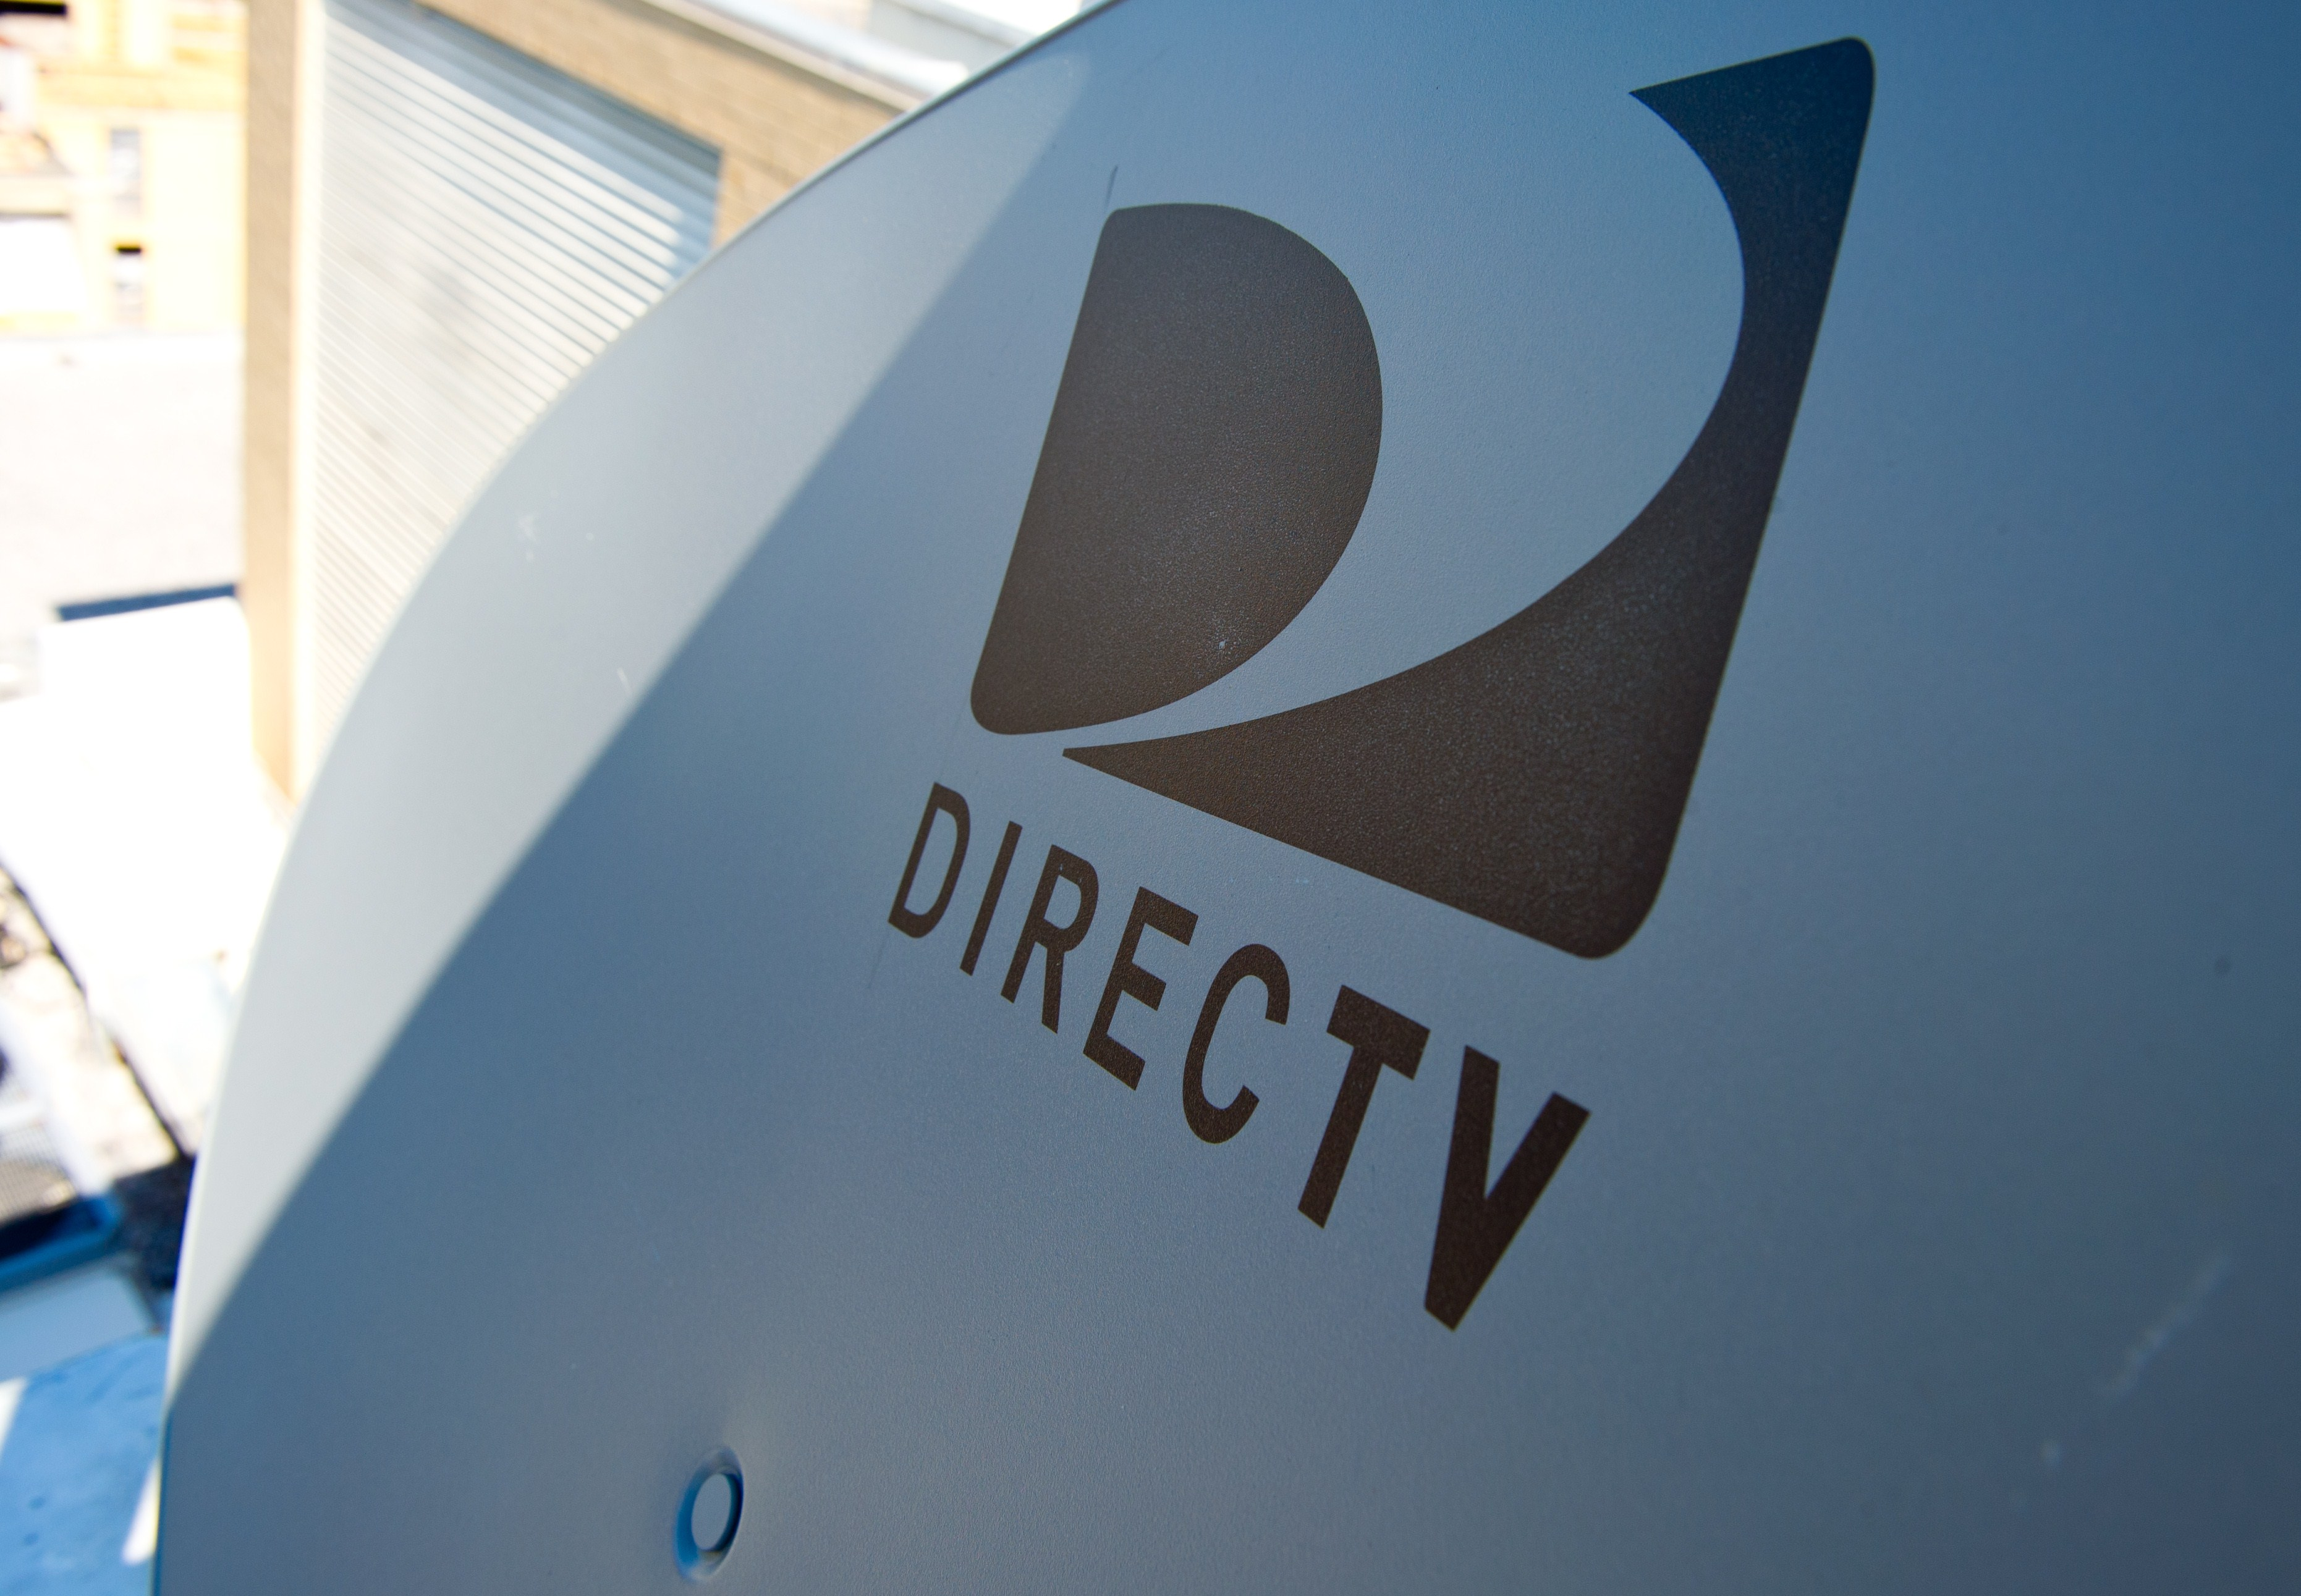 DirecTV has become a core part of AT&T's business.